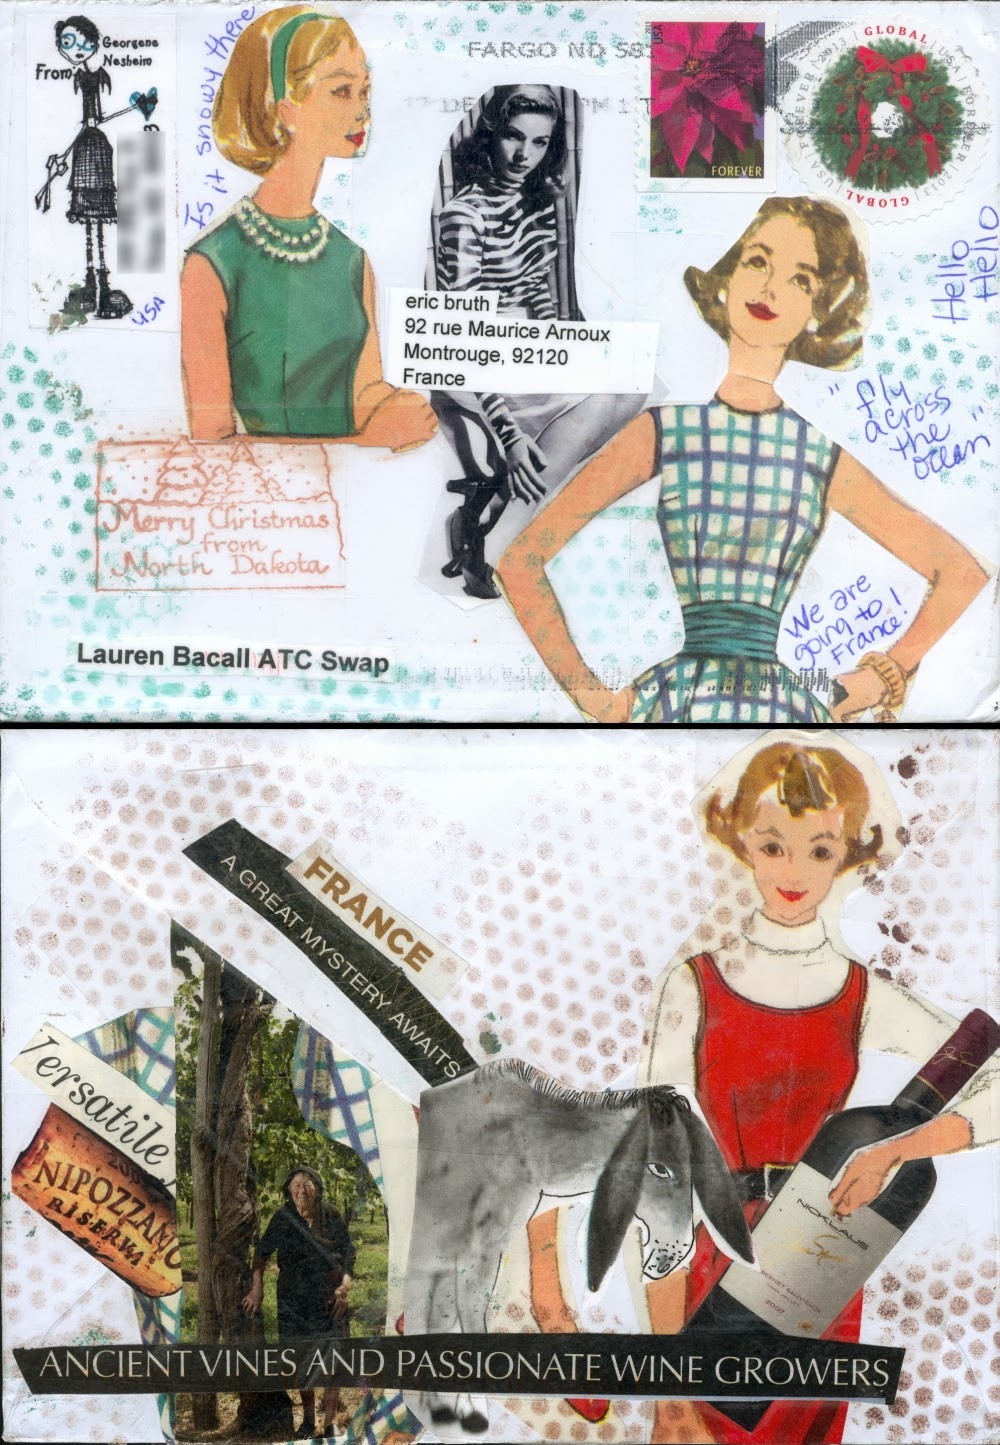 My Mail Art World: Lauren Bacall ATC swap